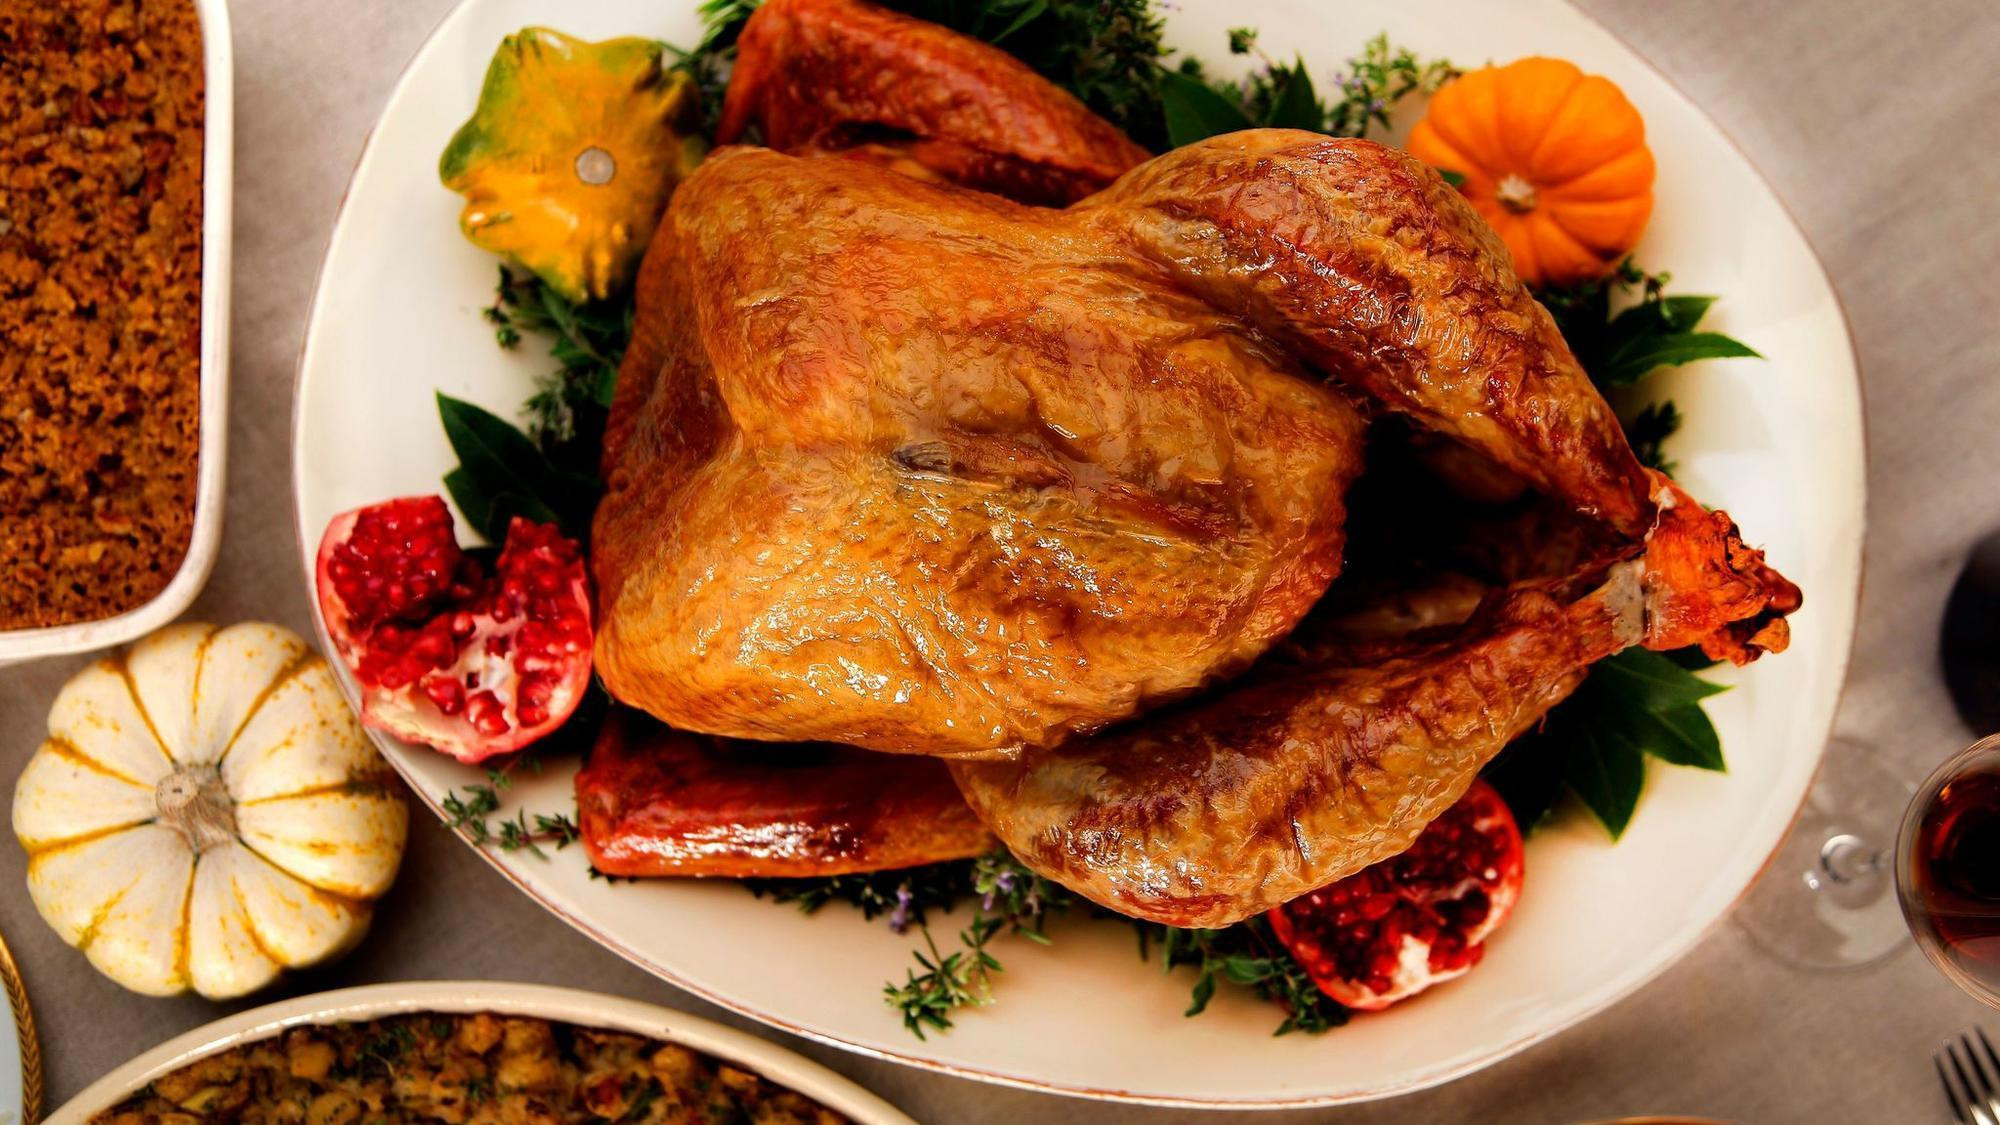 Prepare A Turkey For Thanksgiving  Turkey 101 How to cook a Thanksgiving turkey LA Times